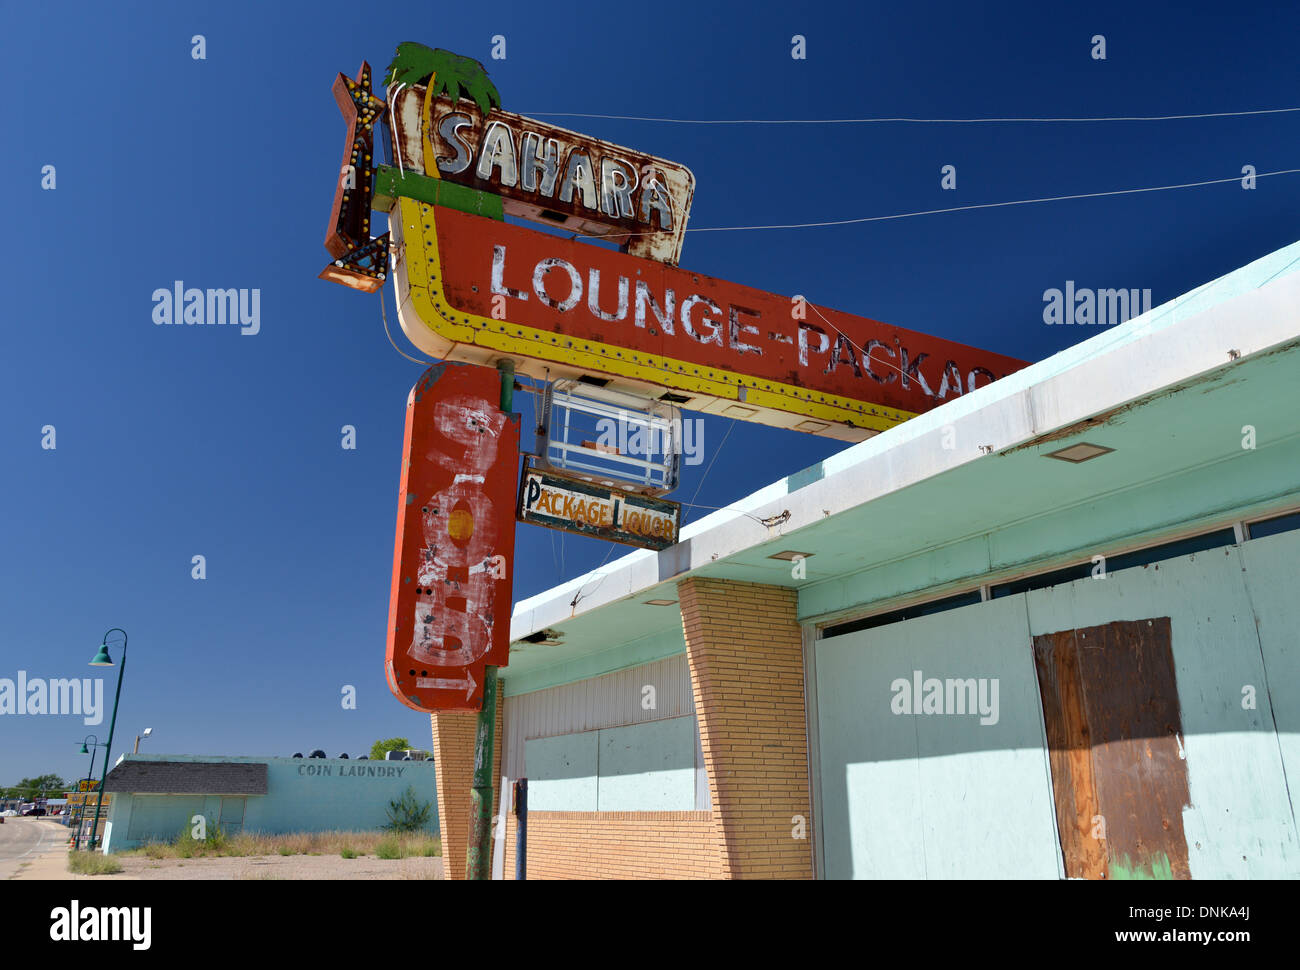 Derelict 1960s lounge bar, The Sahara along old Route 66 in New Mexico - Stock Image